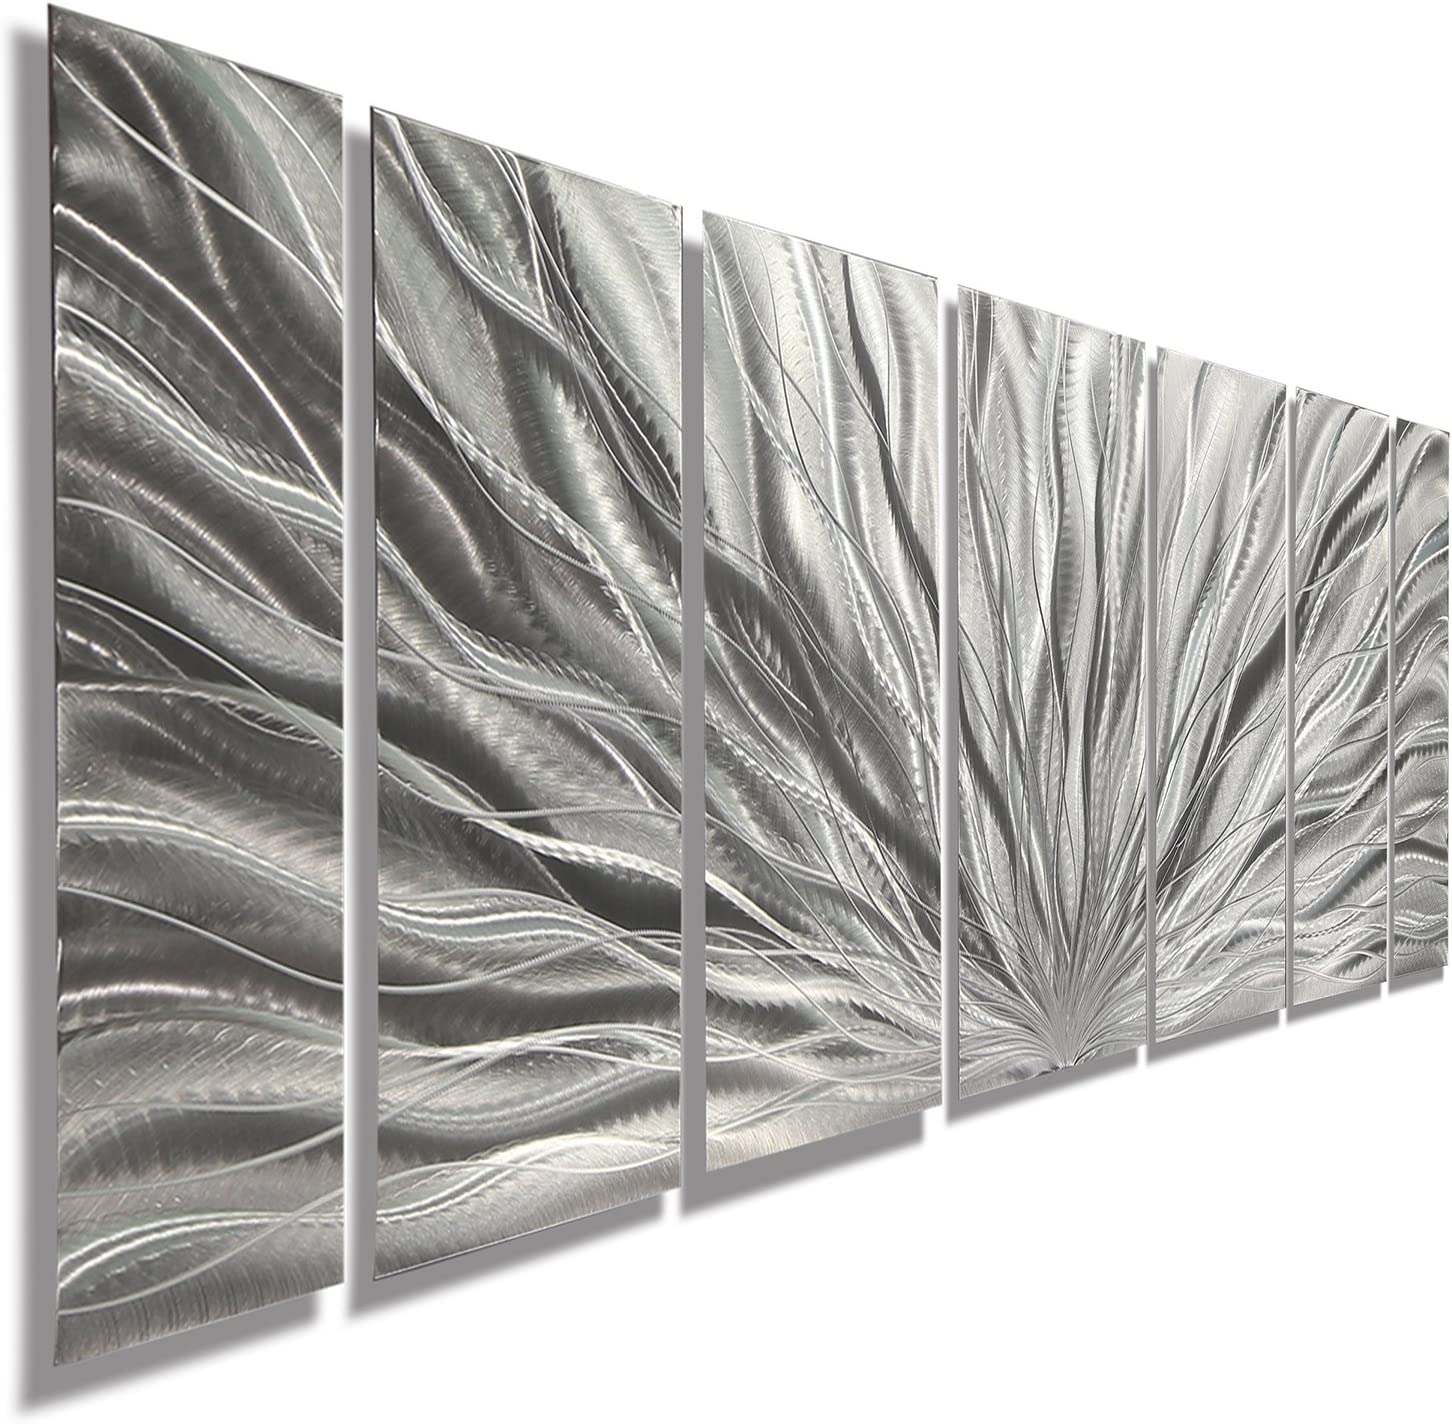 Amazon Com Statements2000 Abstract Large 3d Metal Art Panels Wall Hanging Indoor Outdoor Sculpture By Jon Allen Silver 68 X 24 Silver Plumage Home Kitchen